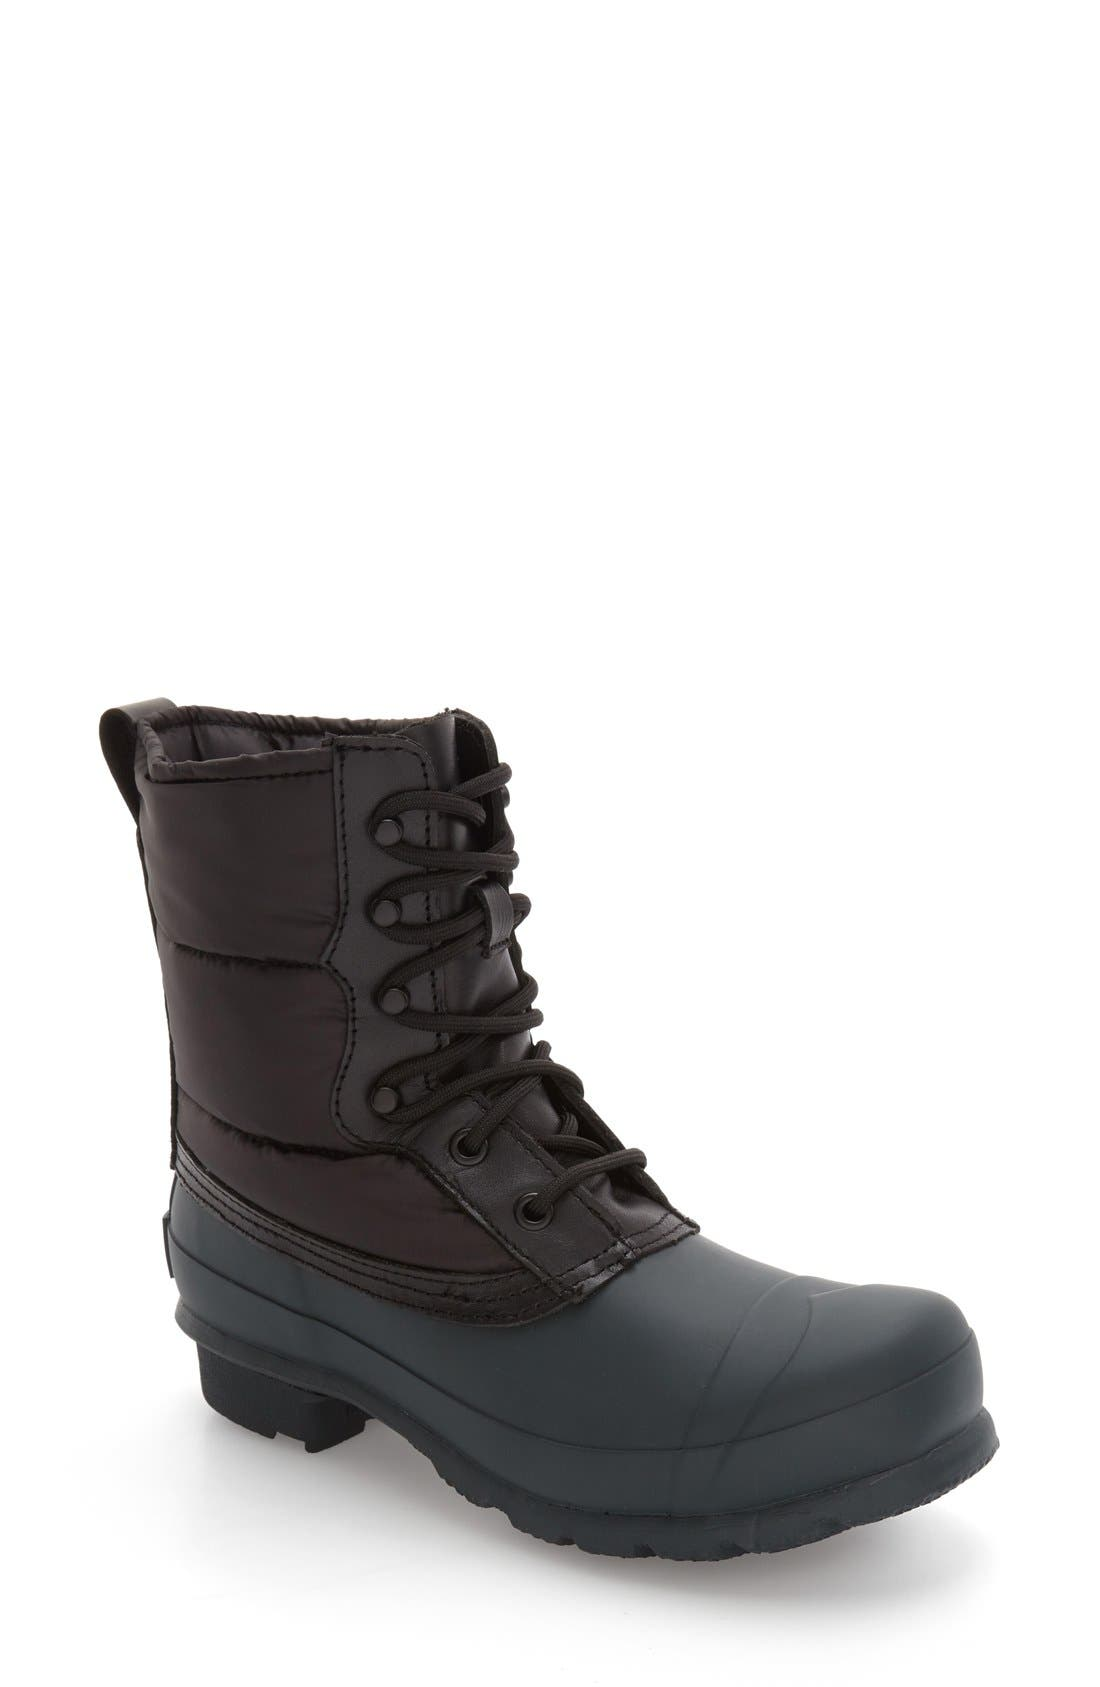 Alternate Image 1 Selected - Hunter 'Original Short' Quilted Lace-Up Boot (Women)